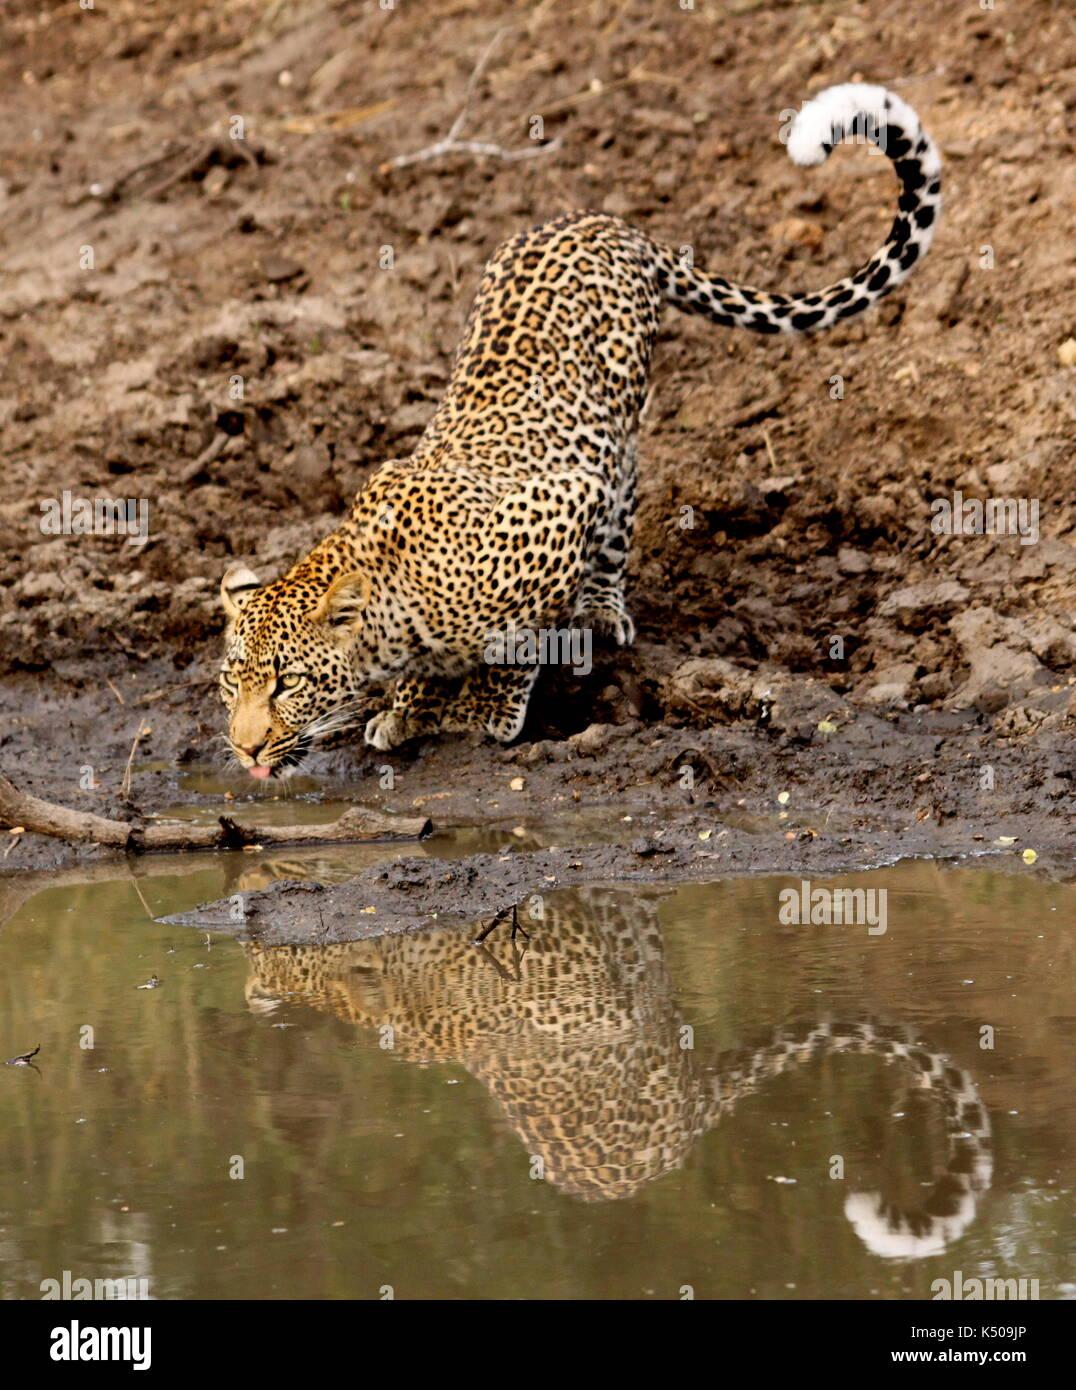 Leopard drinking from a watering hole, Londolozi, South Africa - Stock Image